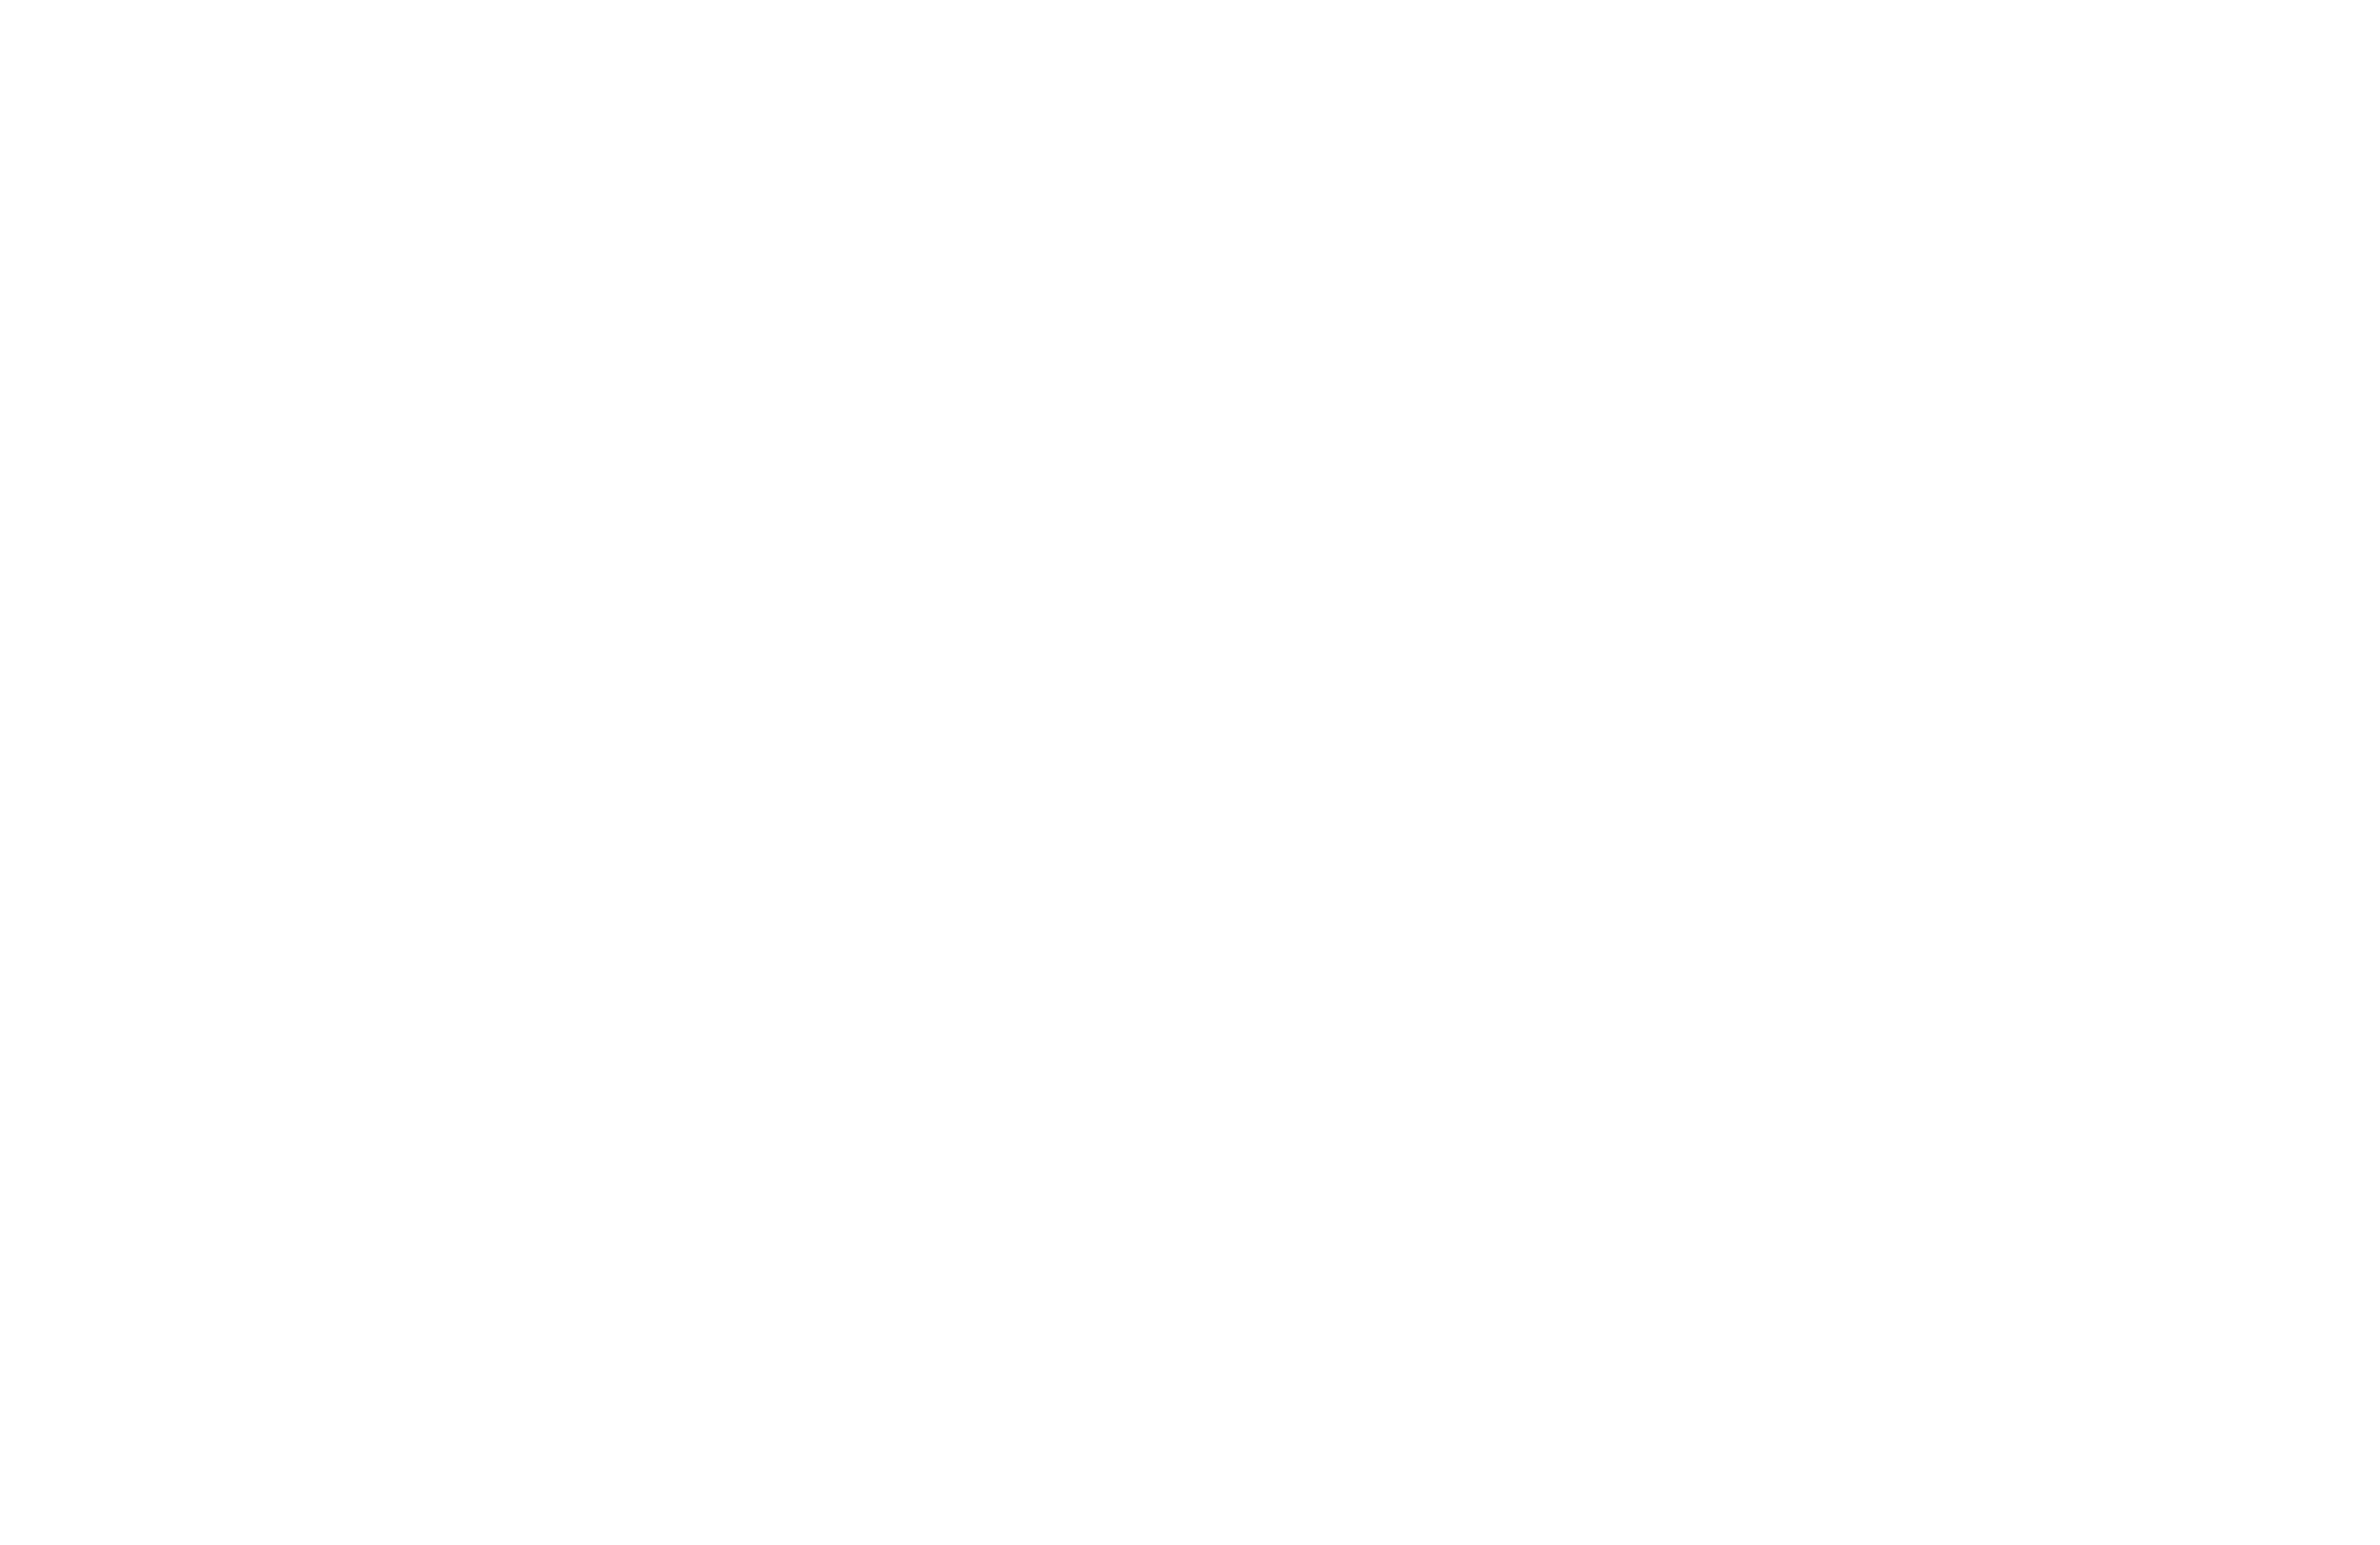 HUNT IN SWEDEN